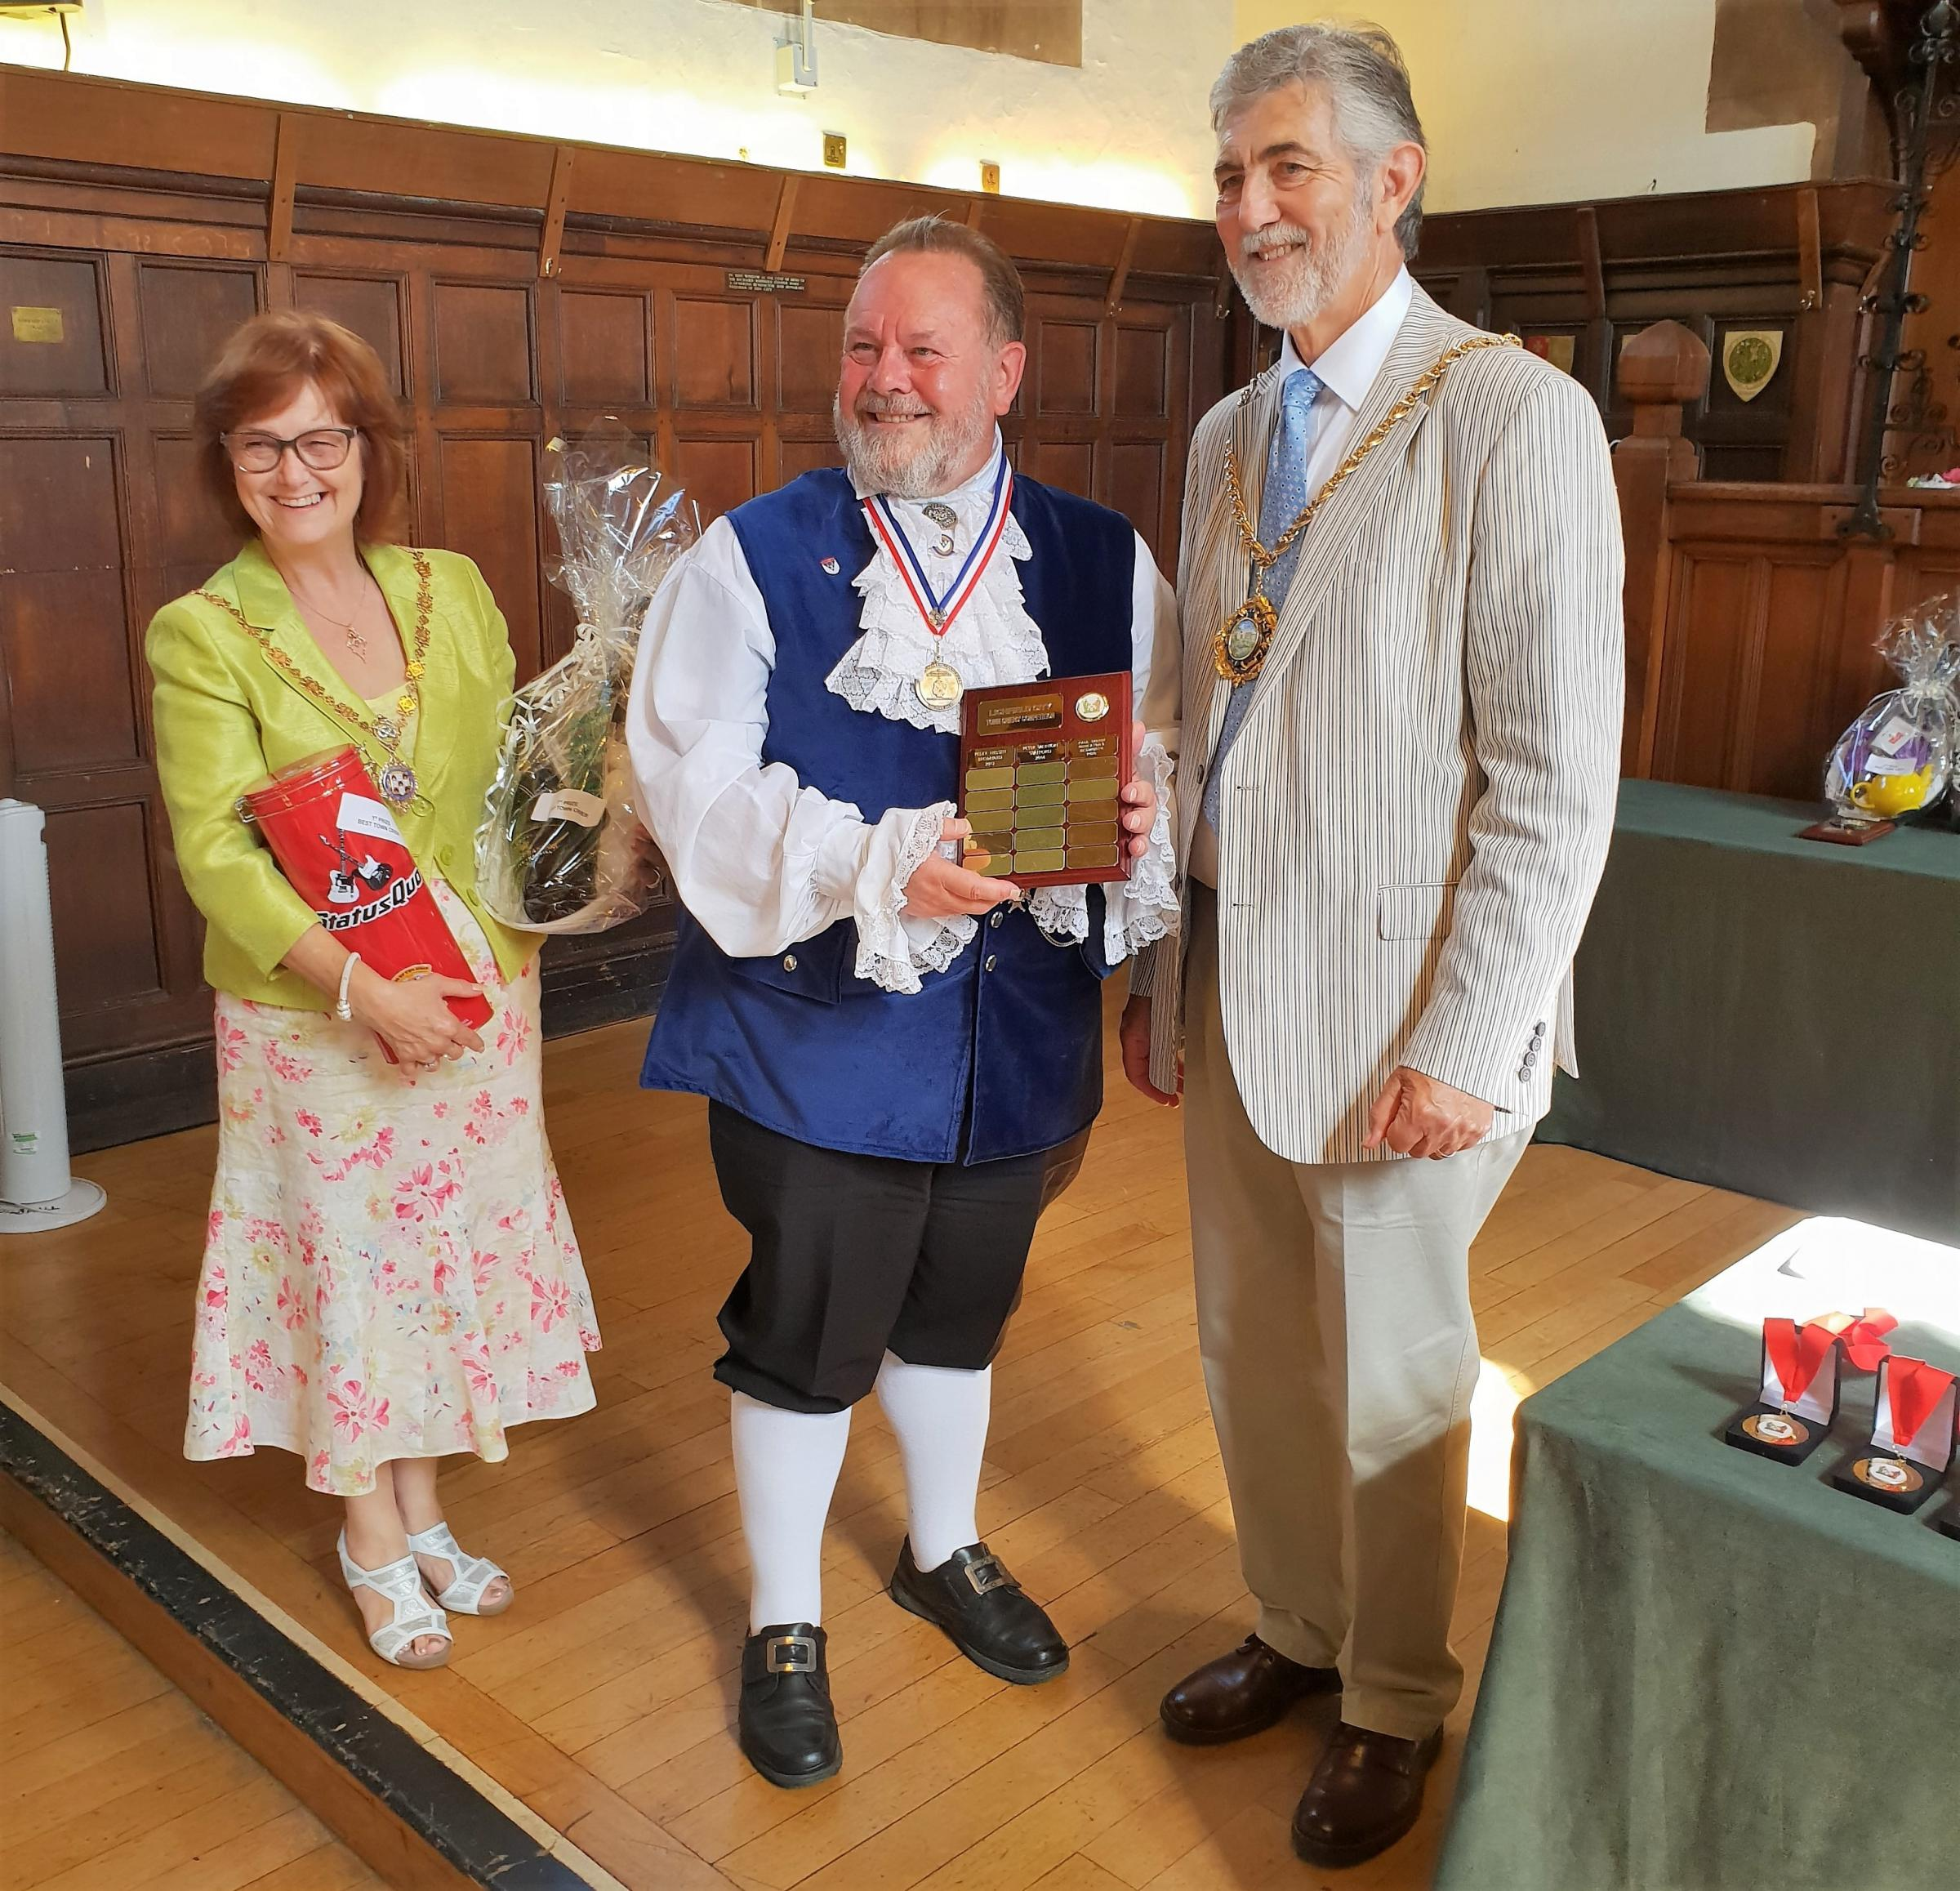 Otley Bellman Terry Ford, centre, receiving the Lichfield Town Crier Competition 2018 winner's trophy from the Worshipful Mayor of Lichfield, Councillor David Leytham, and Mayoress Councillor Jan Leytham-Gain